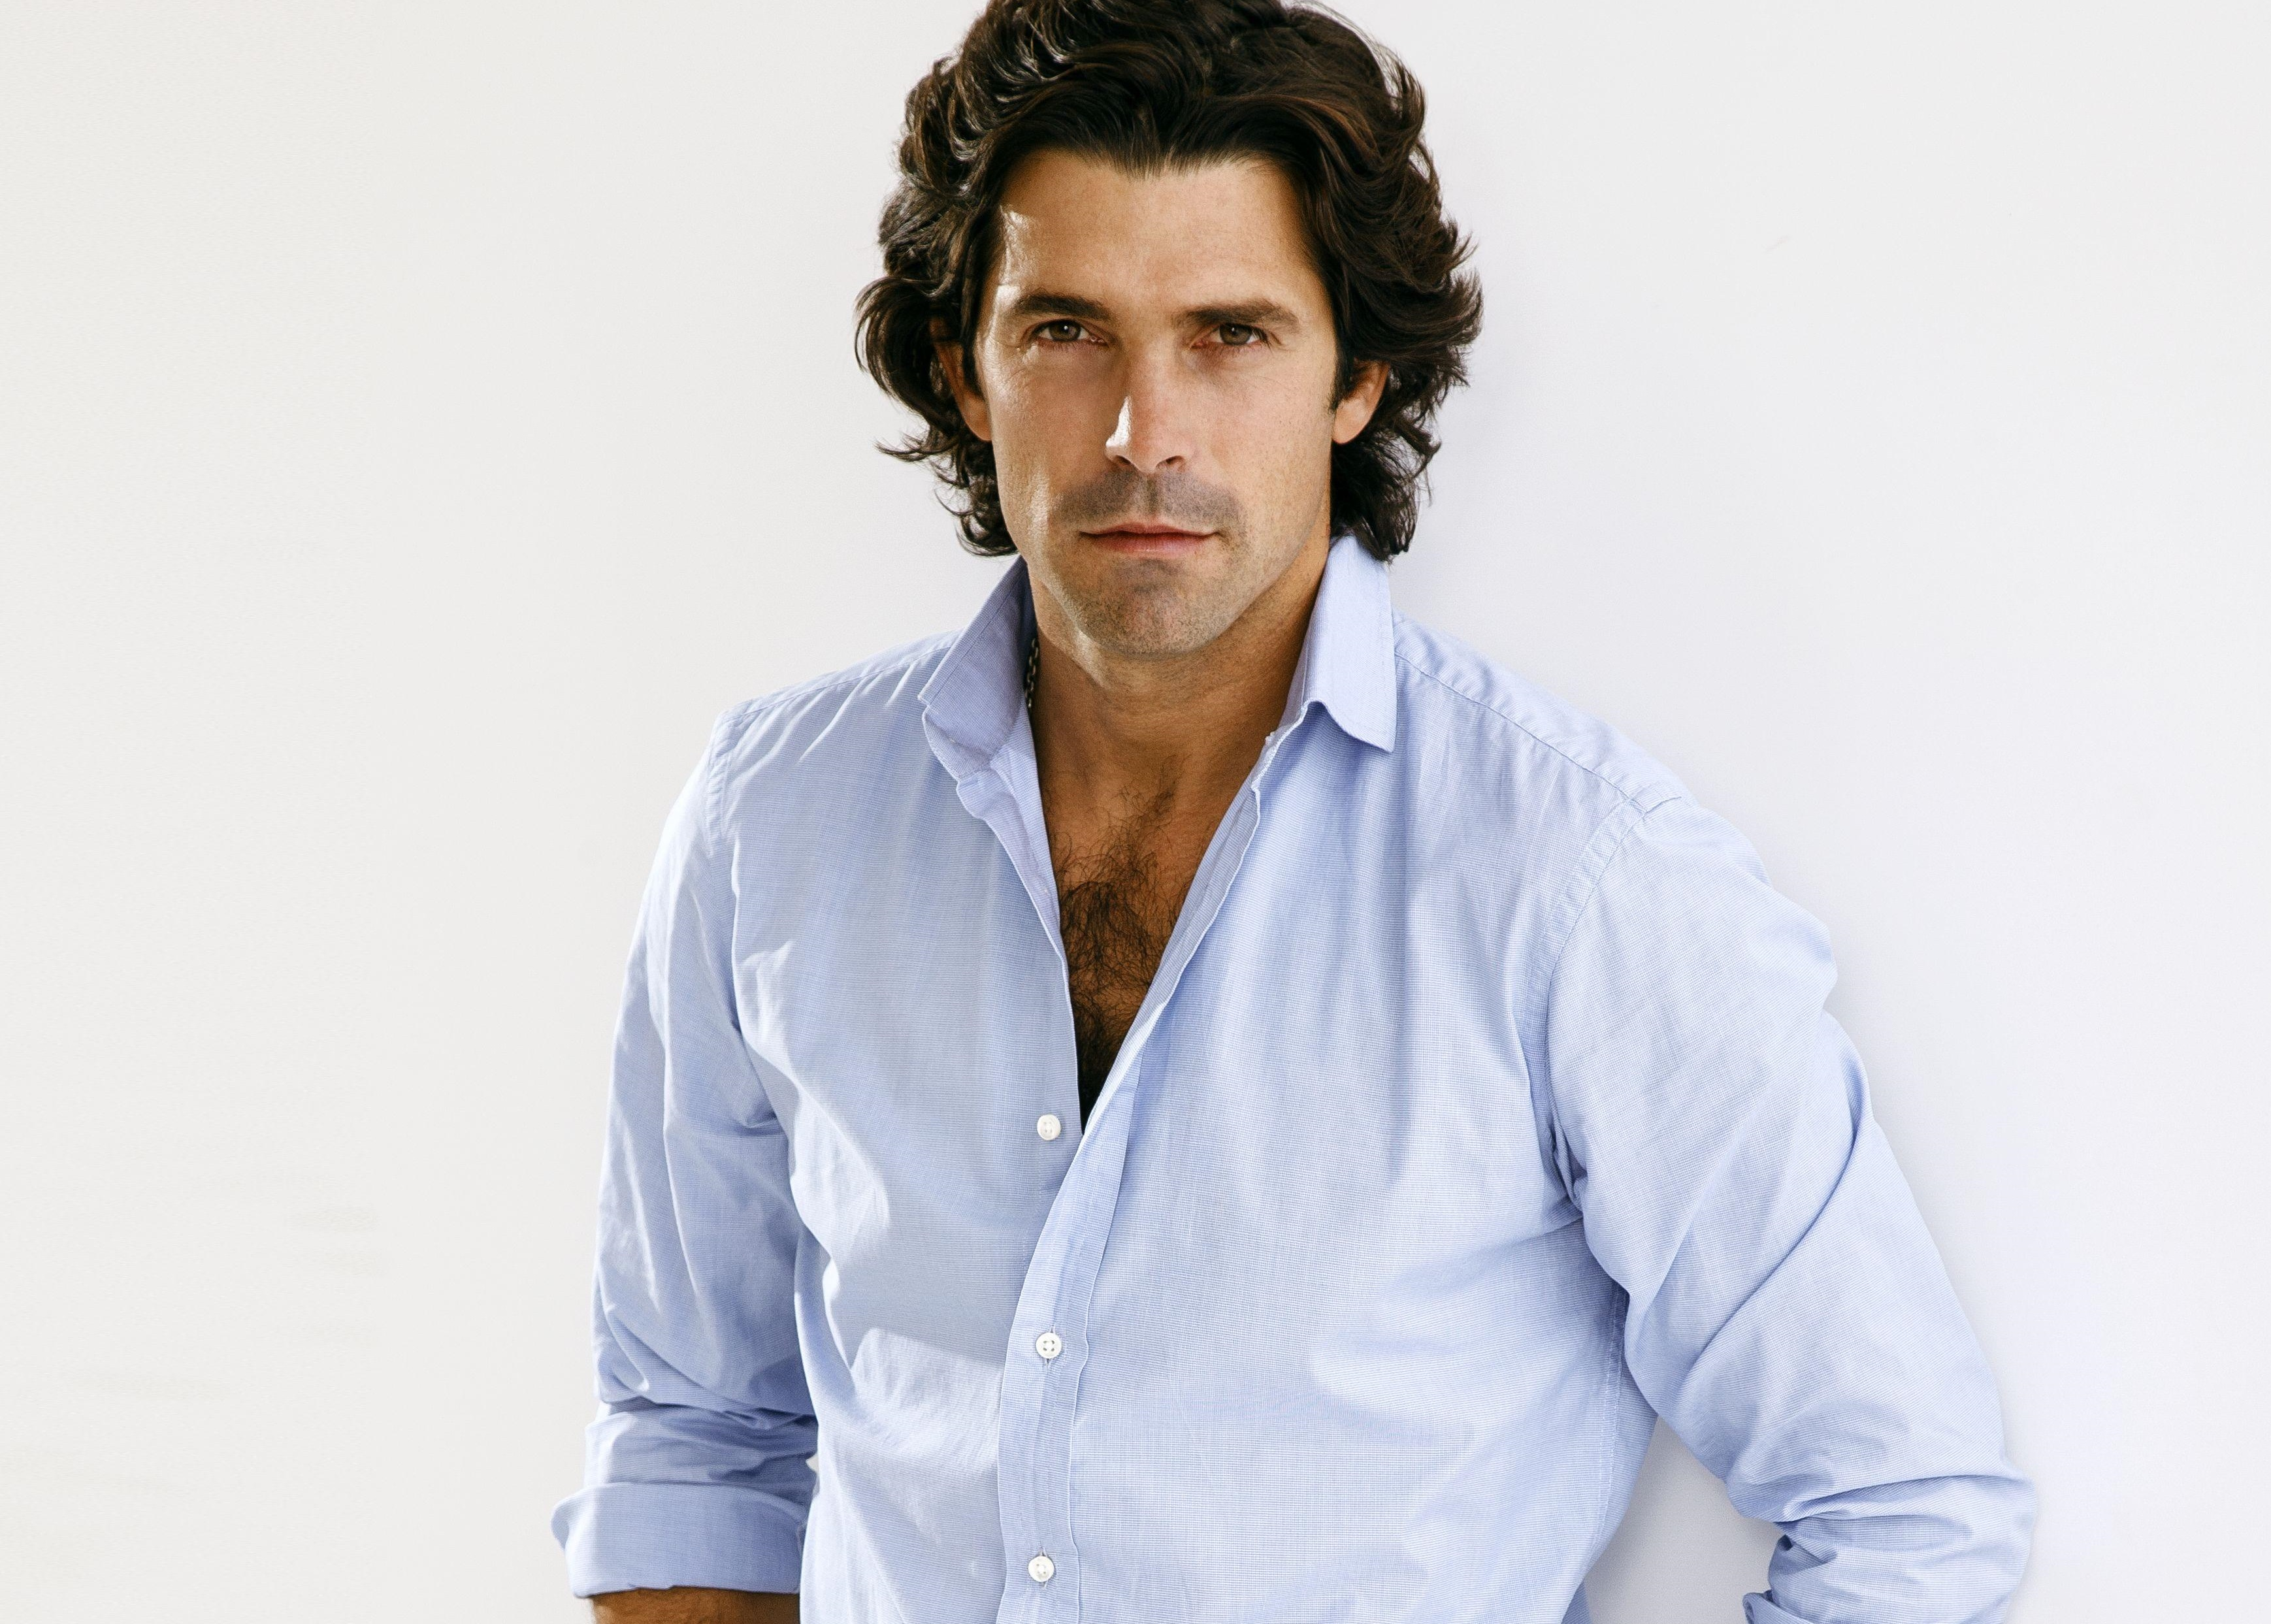 supermodel nacho figueras ver ffentlicht eigene roman. Black Bedroom Furniture Sets. Home Design Ideas